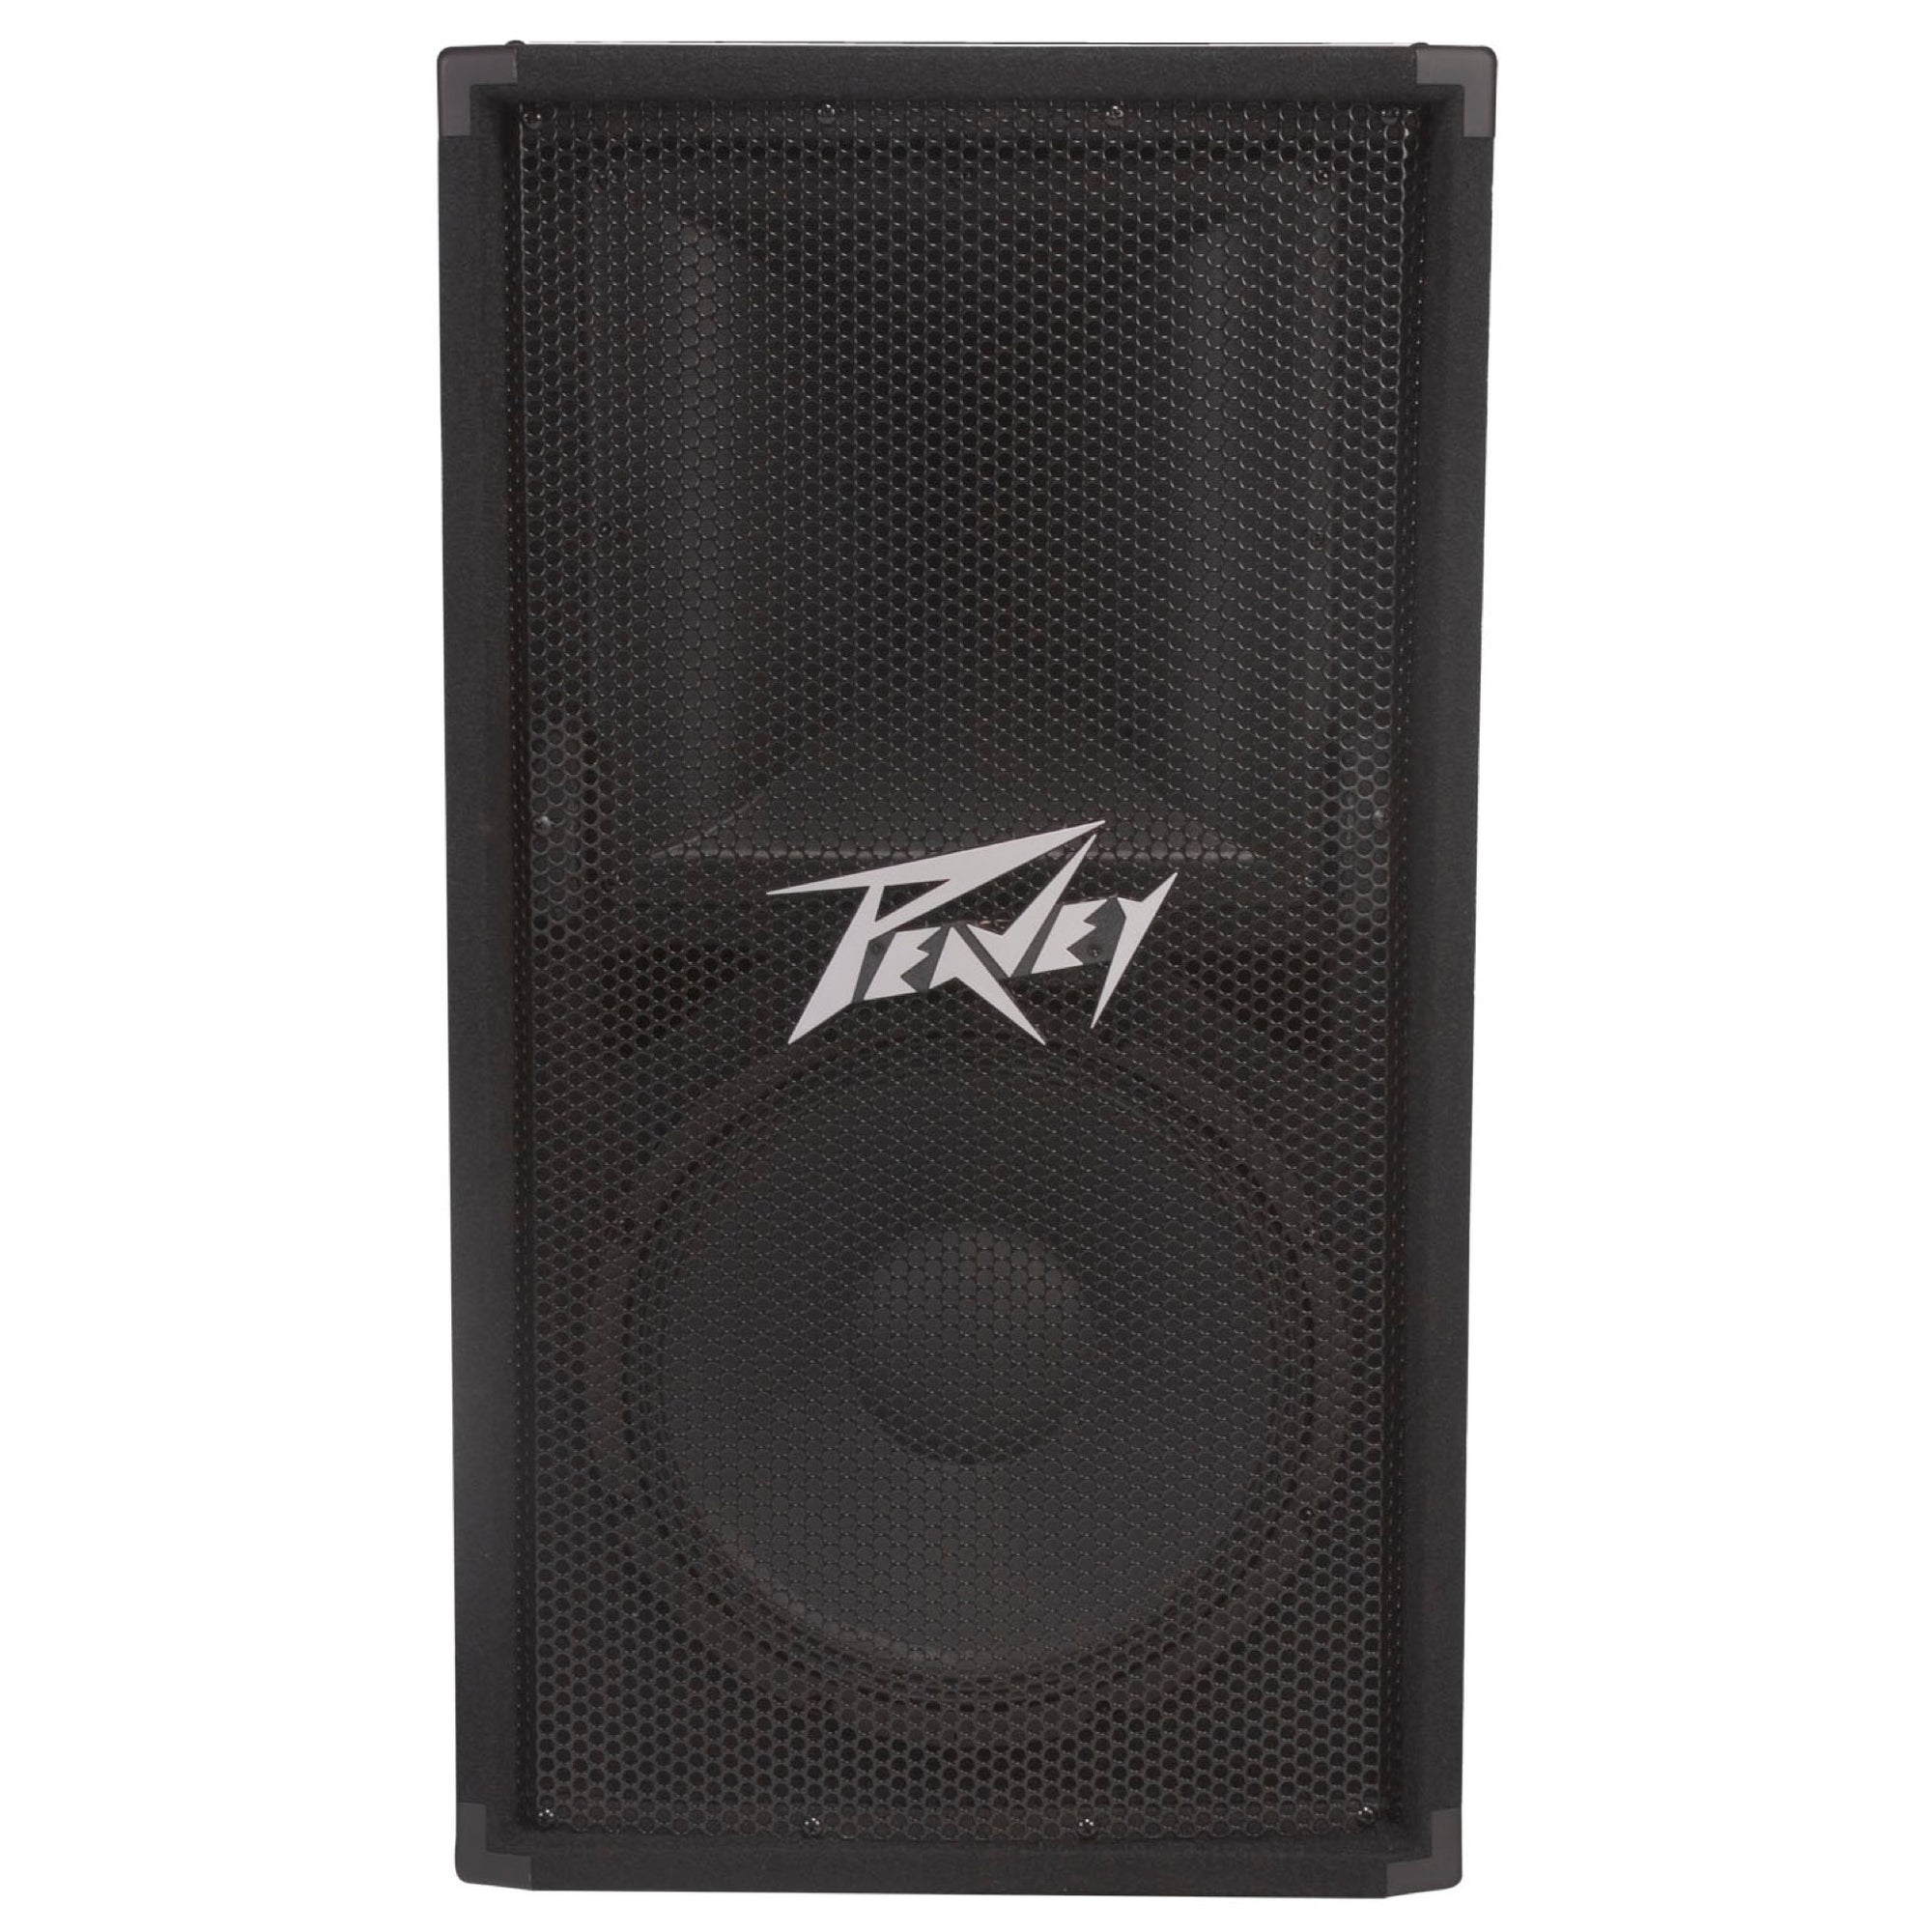 Peavey PV 112 2-Way Passive, Unpowered Loudspeaker (400 Watts, 1x12 Inch)